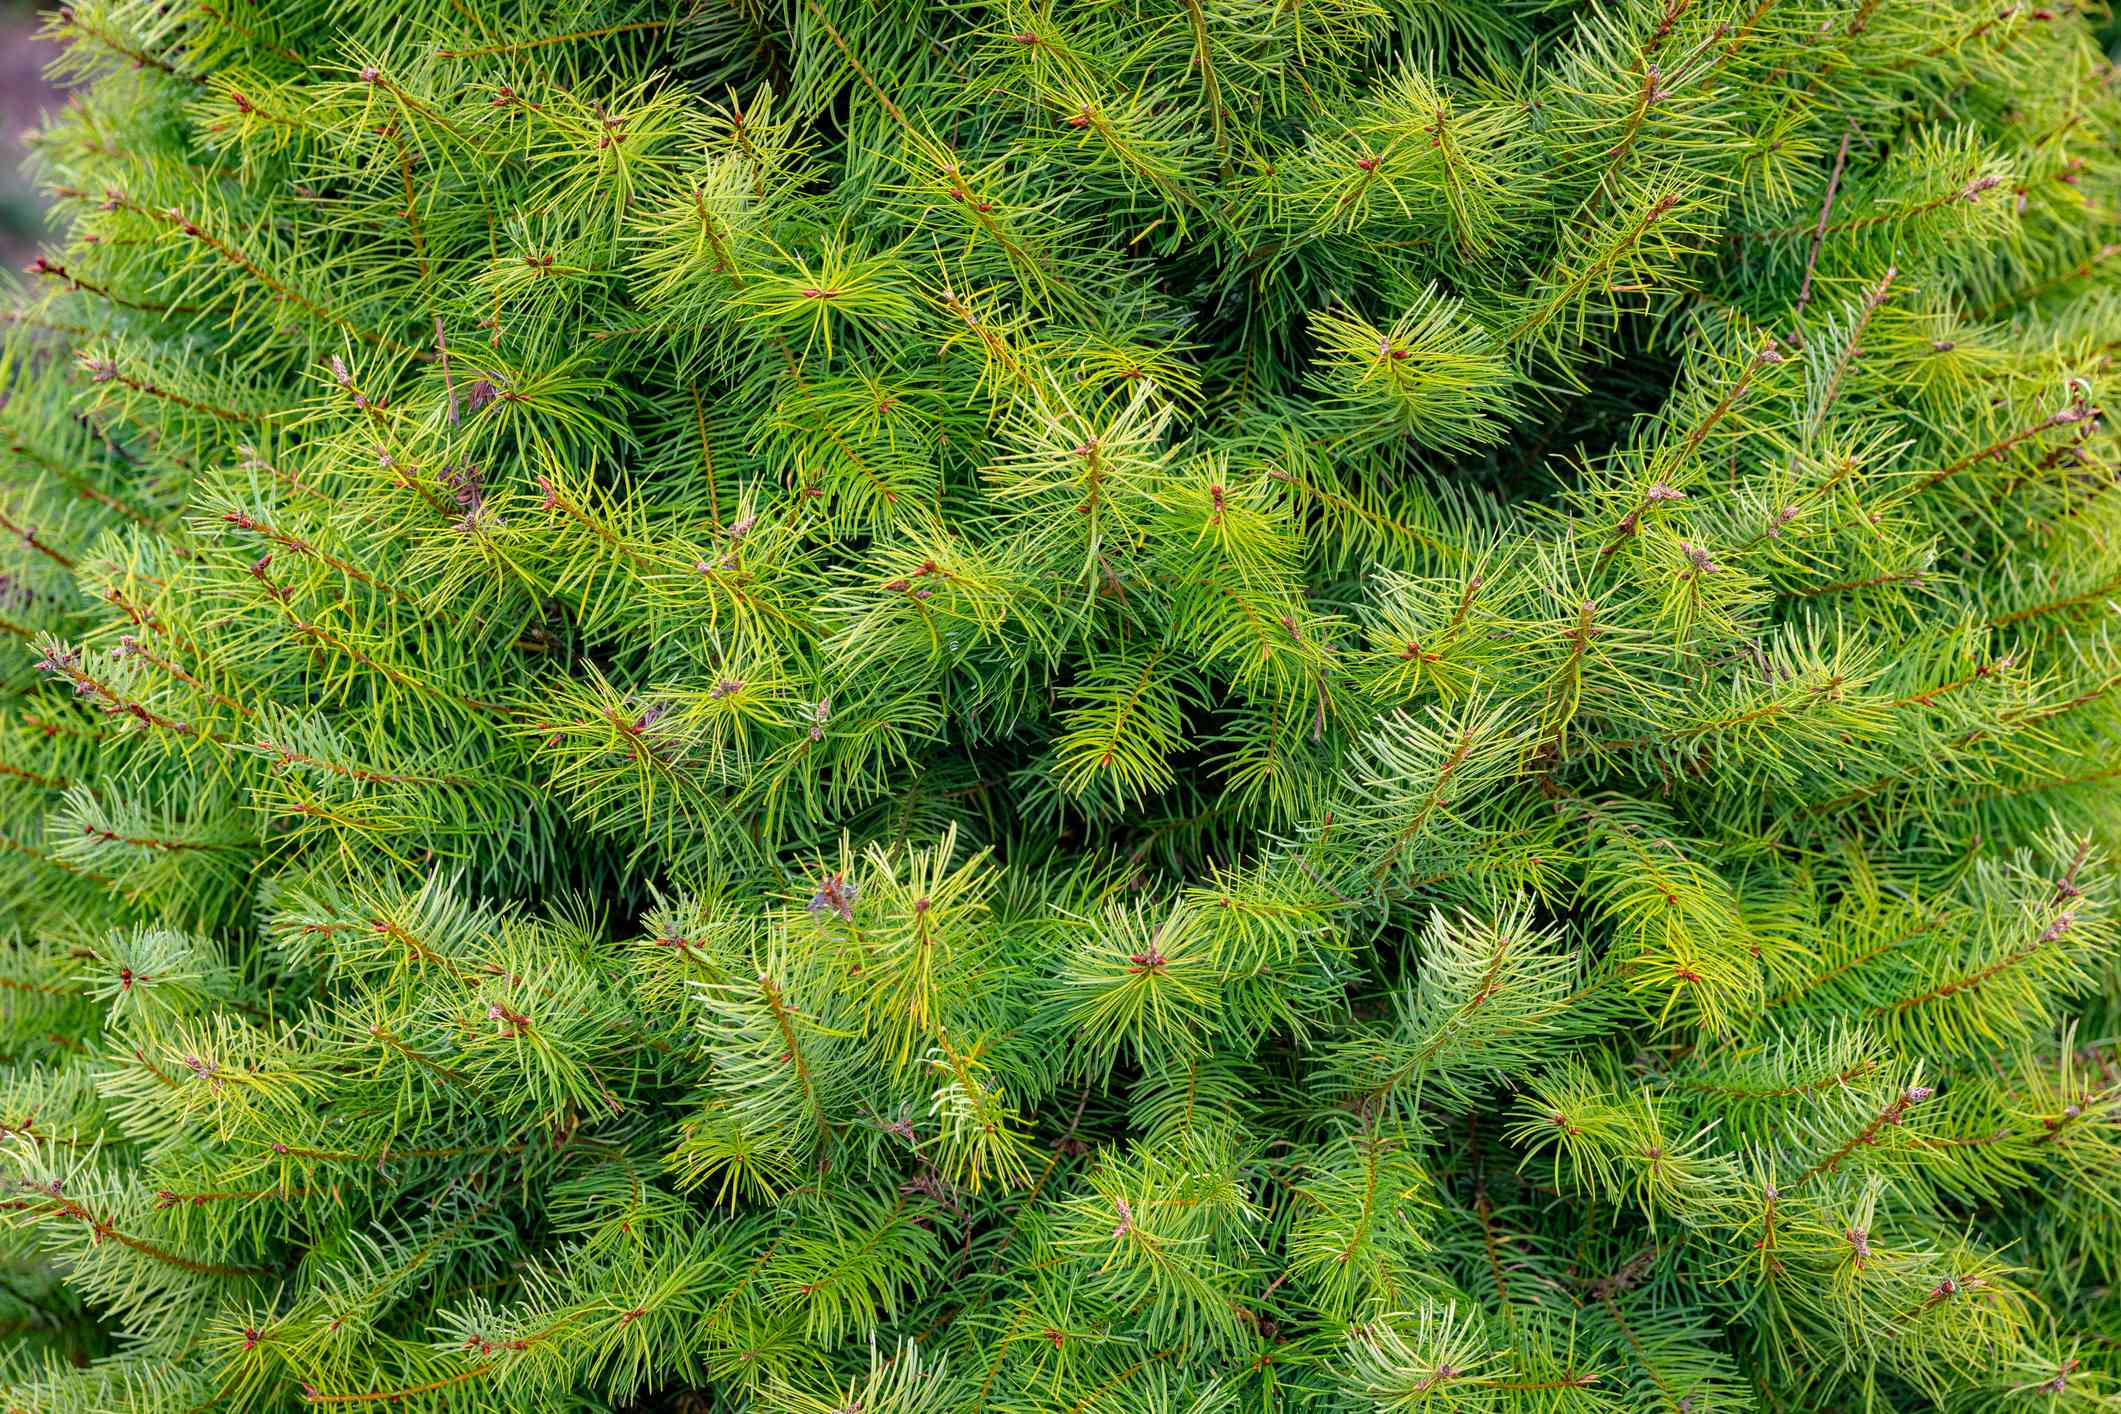 closeup of grand fir tree with brown branches and green needles